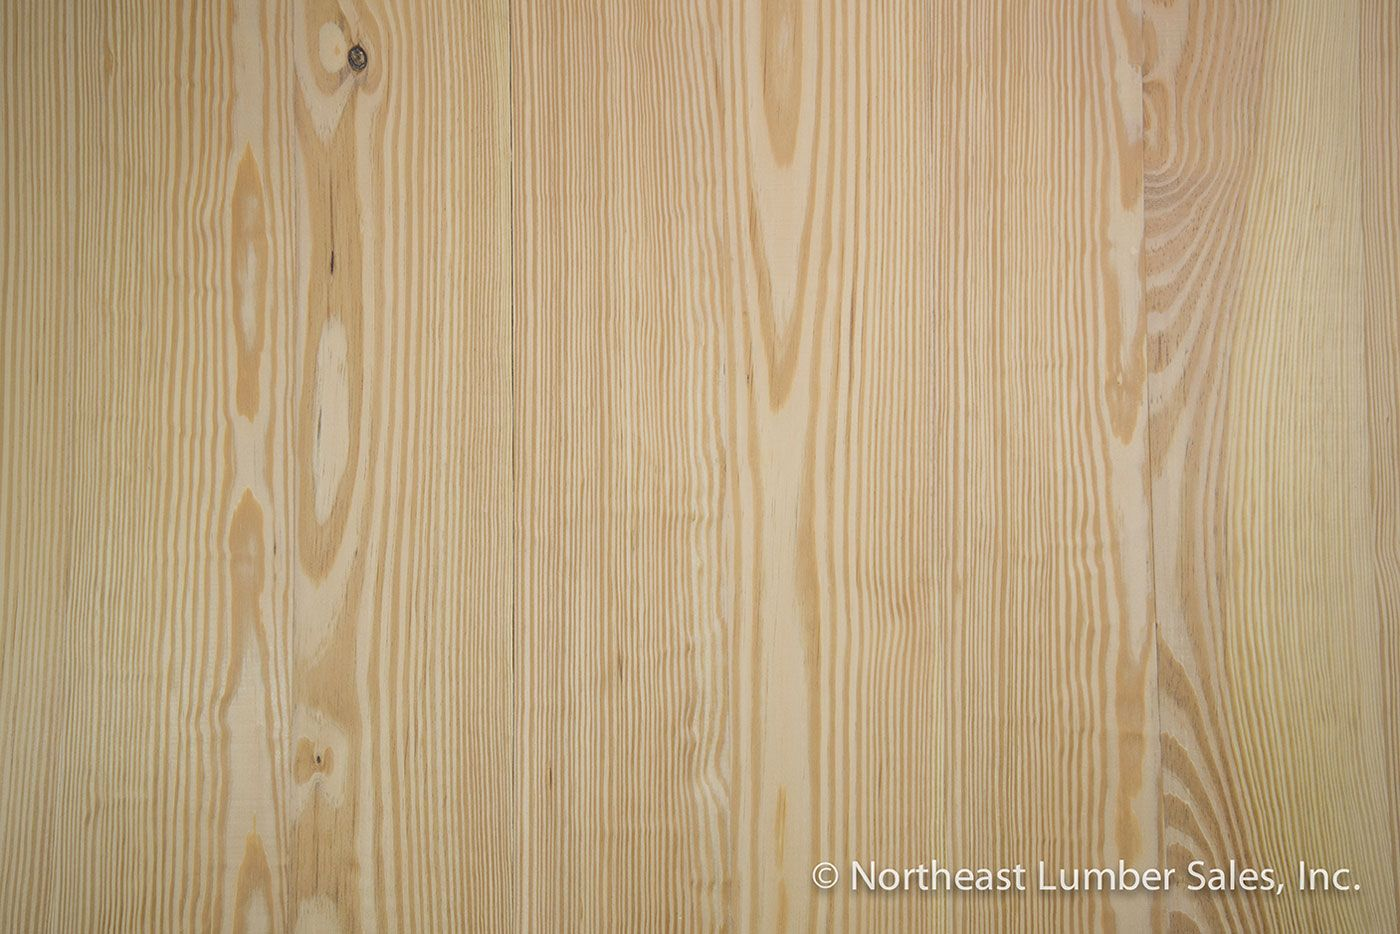 Southern Yellow Pine Grades Northeast Lumber Sales Wood Floors Wide Plank Installing Hardwood Floors Faux Hardwood